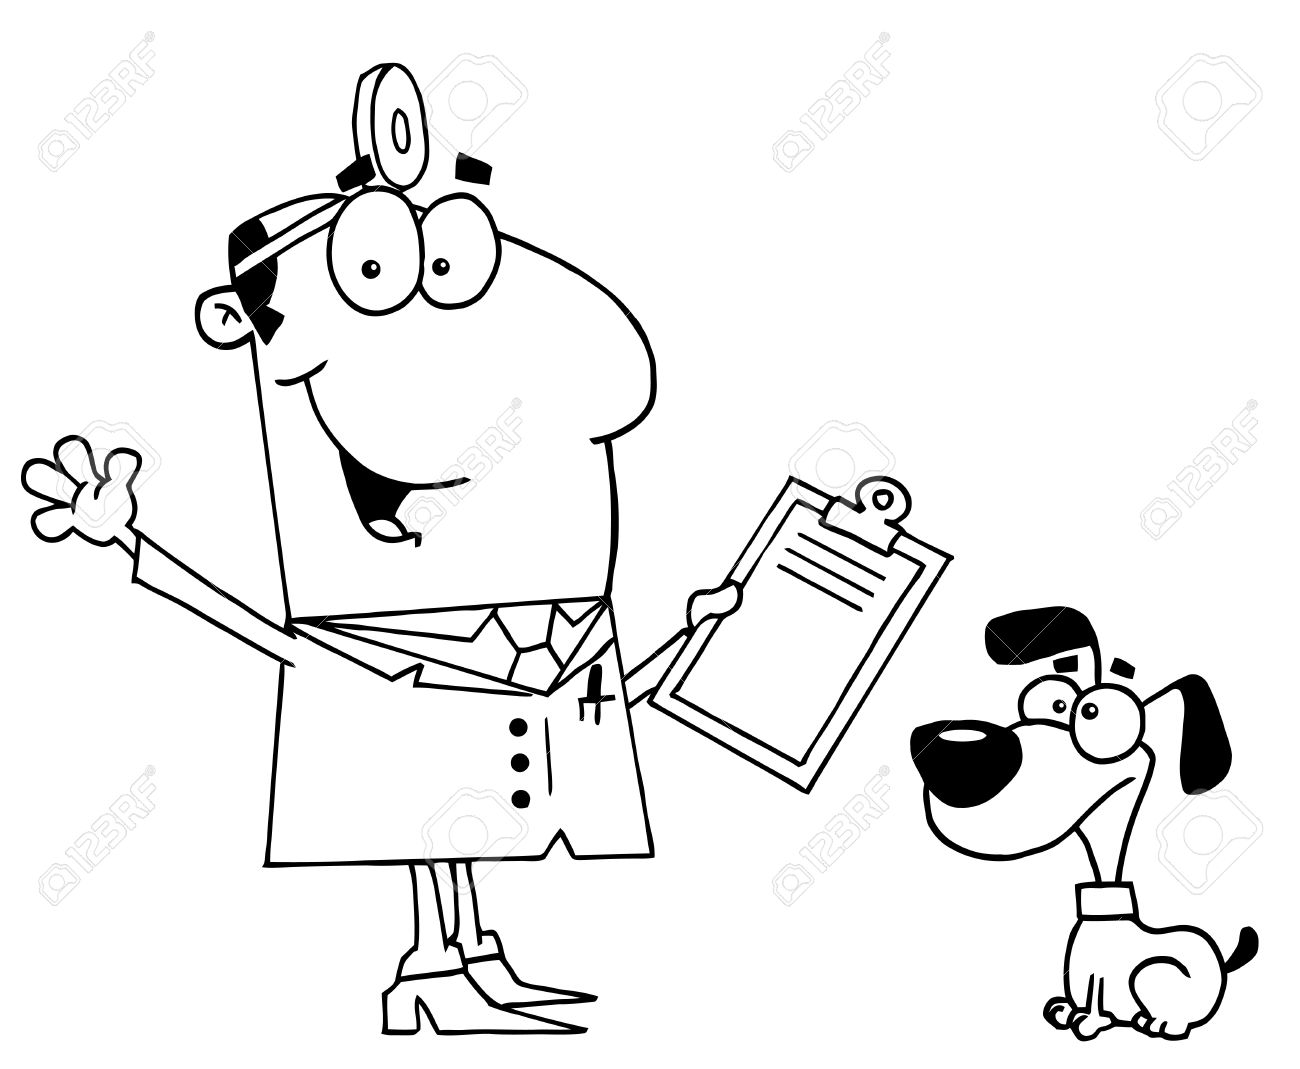 Clipart Illustration of an Outlined Vet and Dog Stock Vector - 16386786